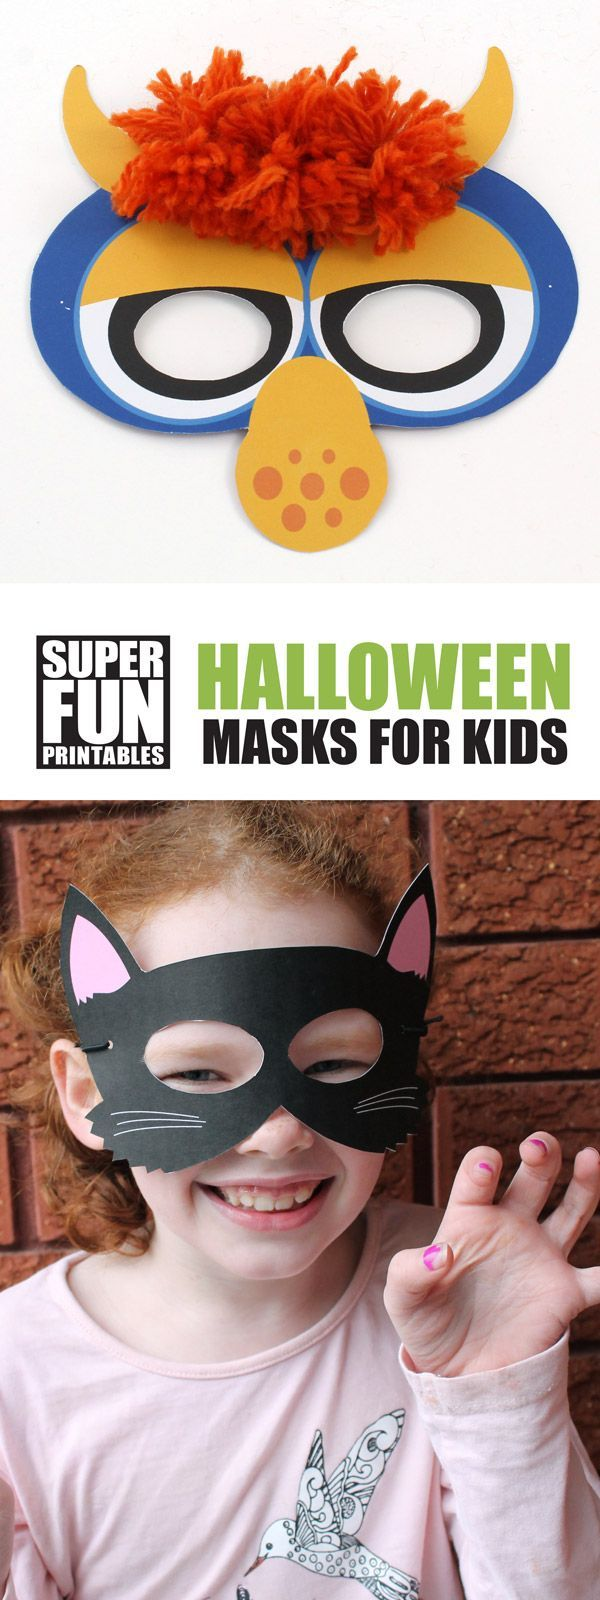 Spooky Halloween masks kids can make. Black cat mask and monster mask in both full colour or colour your own.